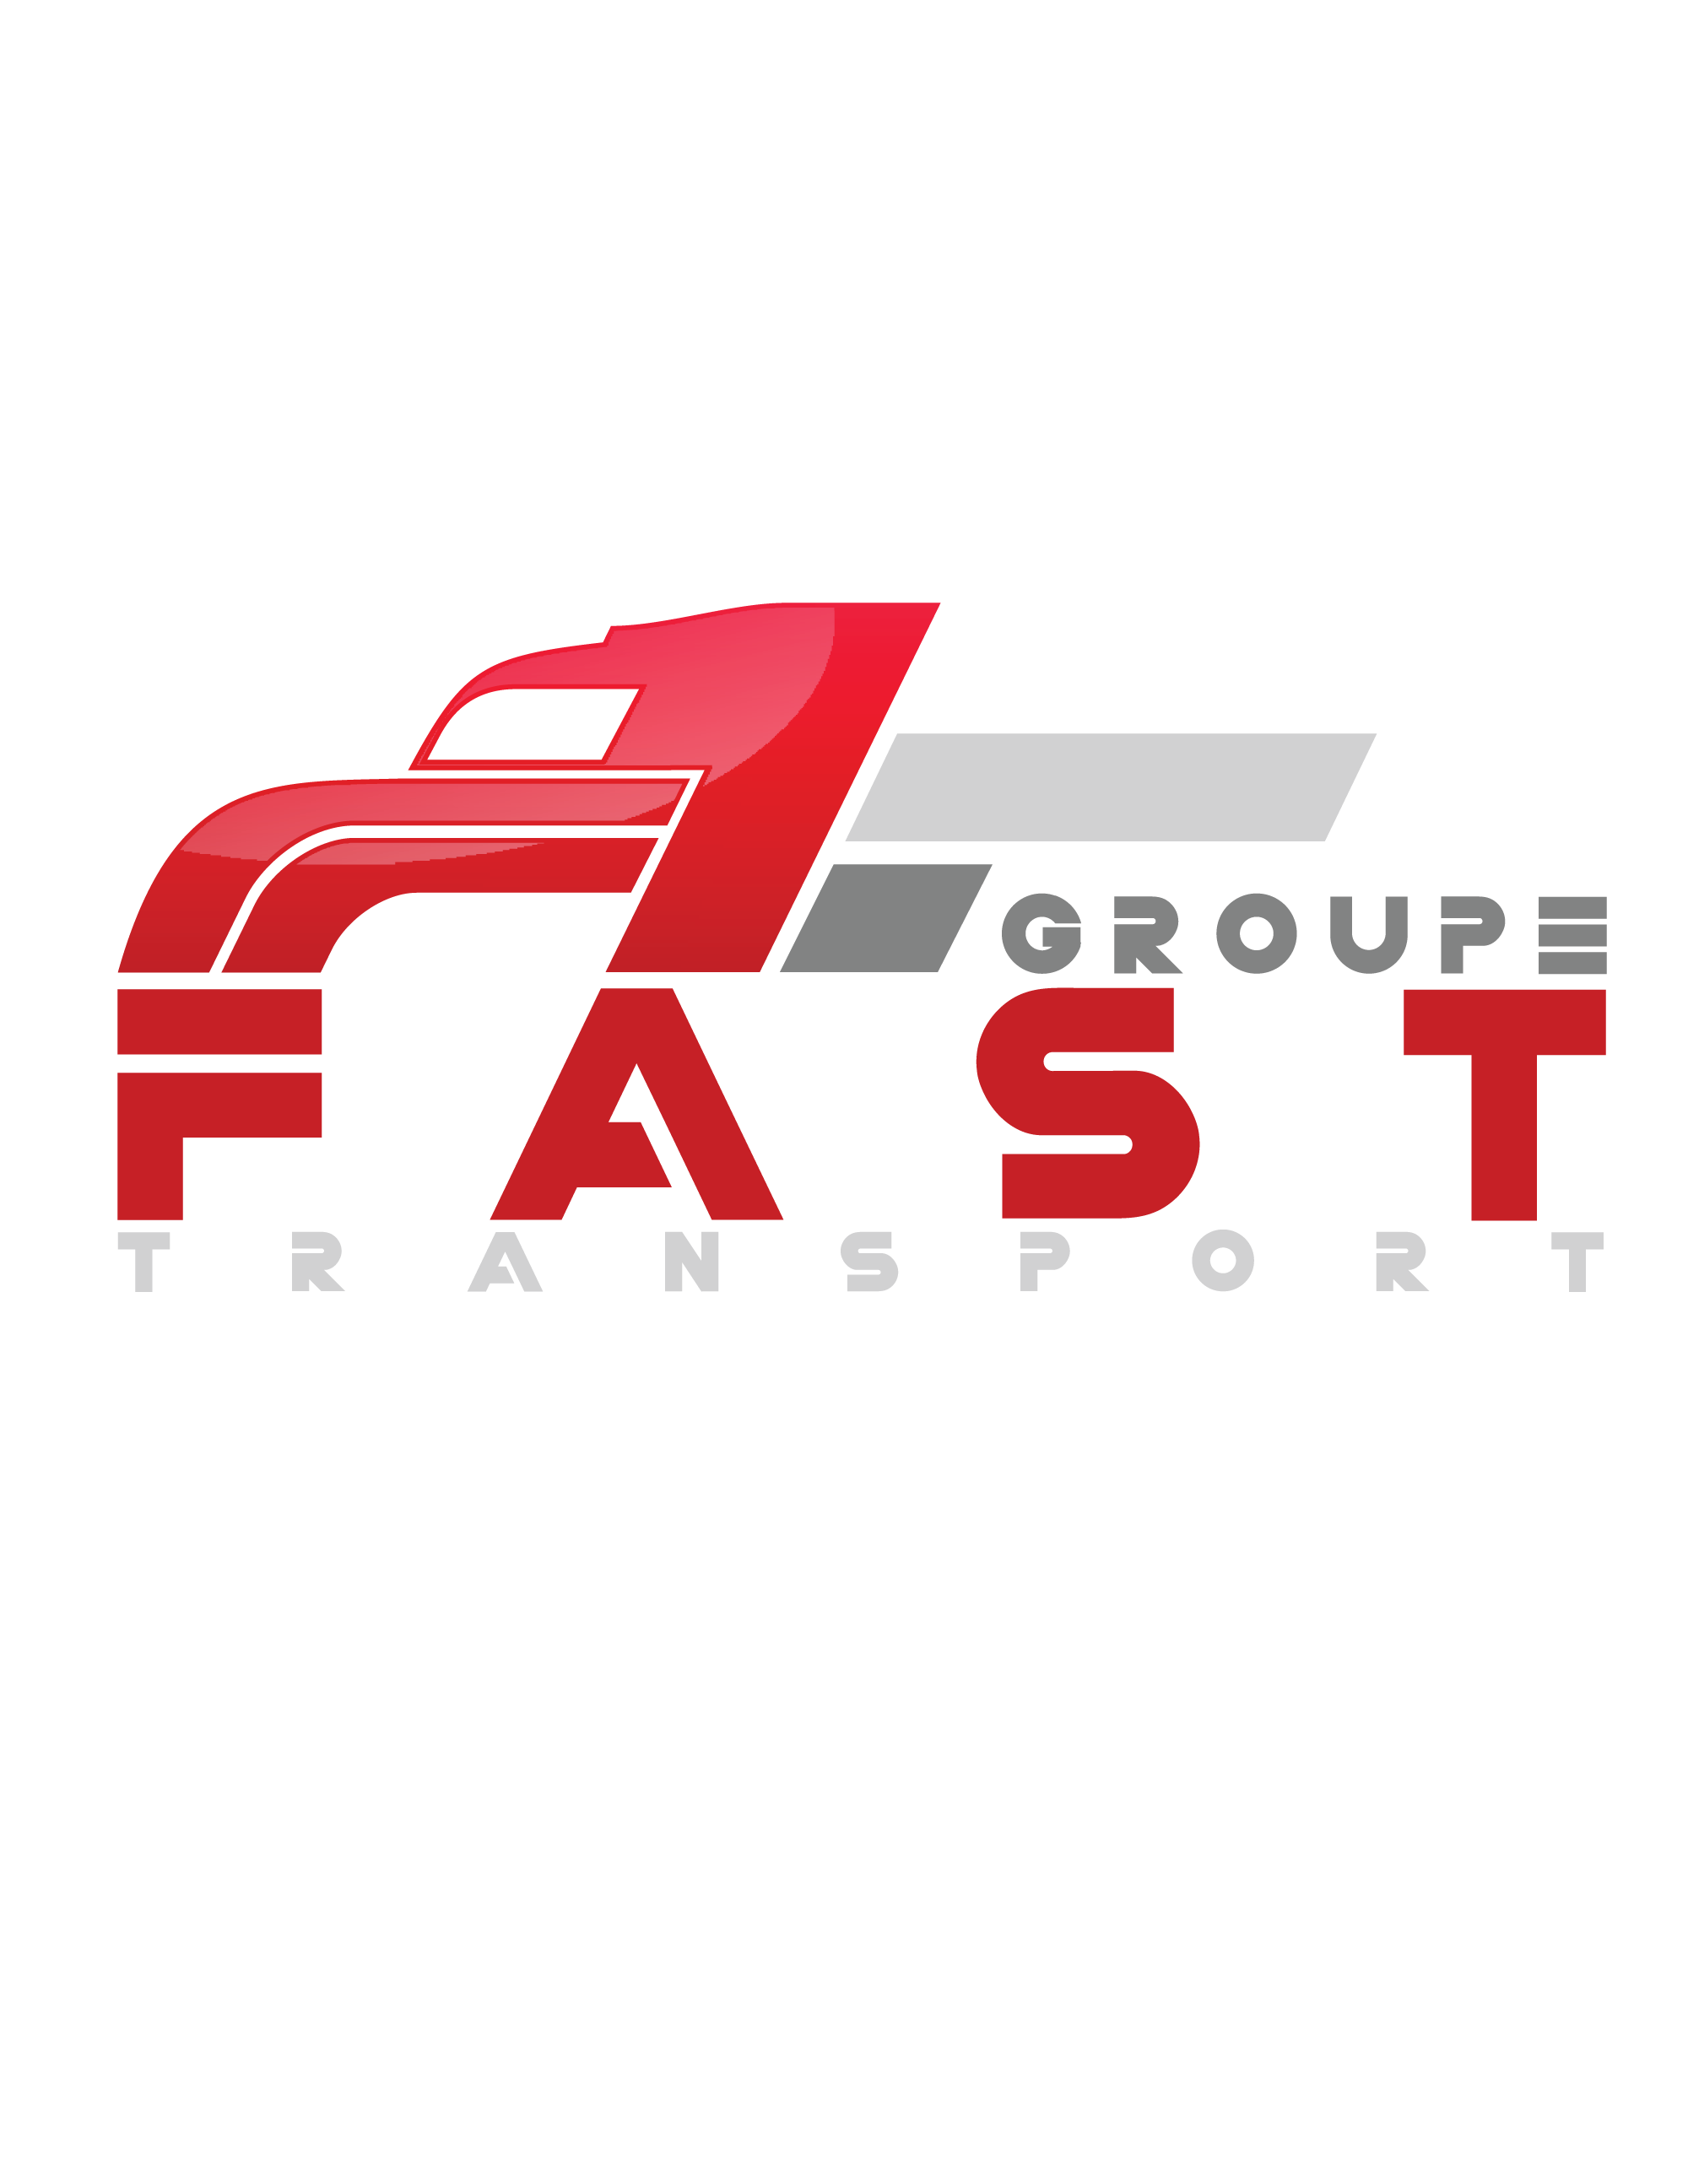 logo_fast_transport_final